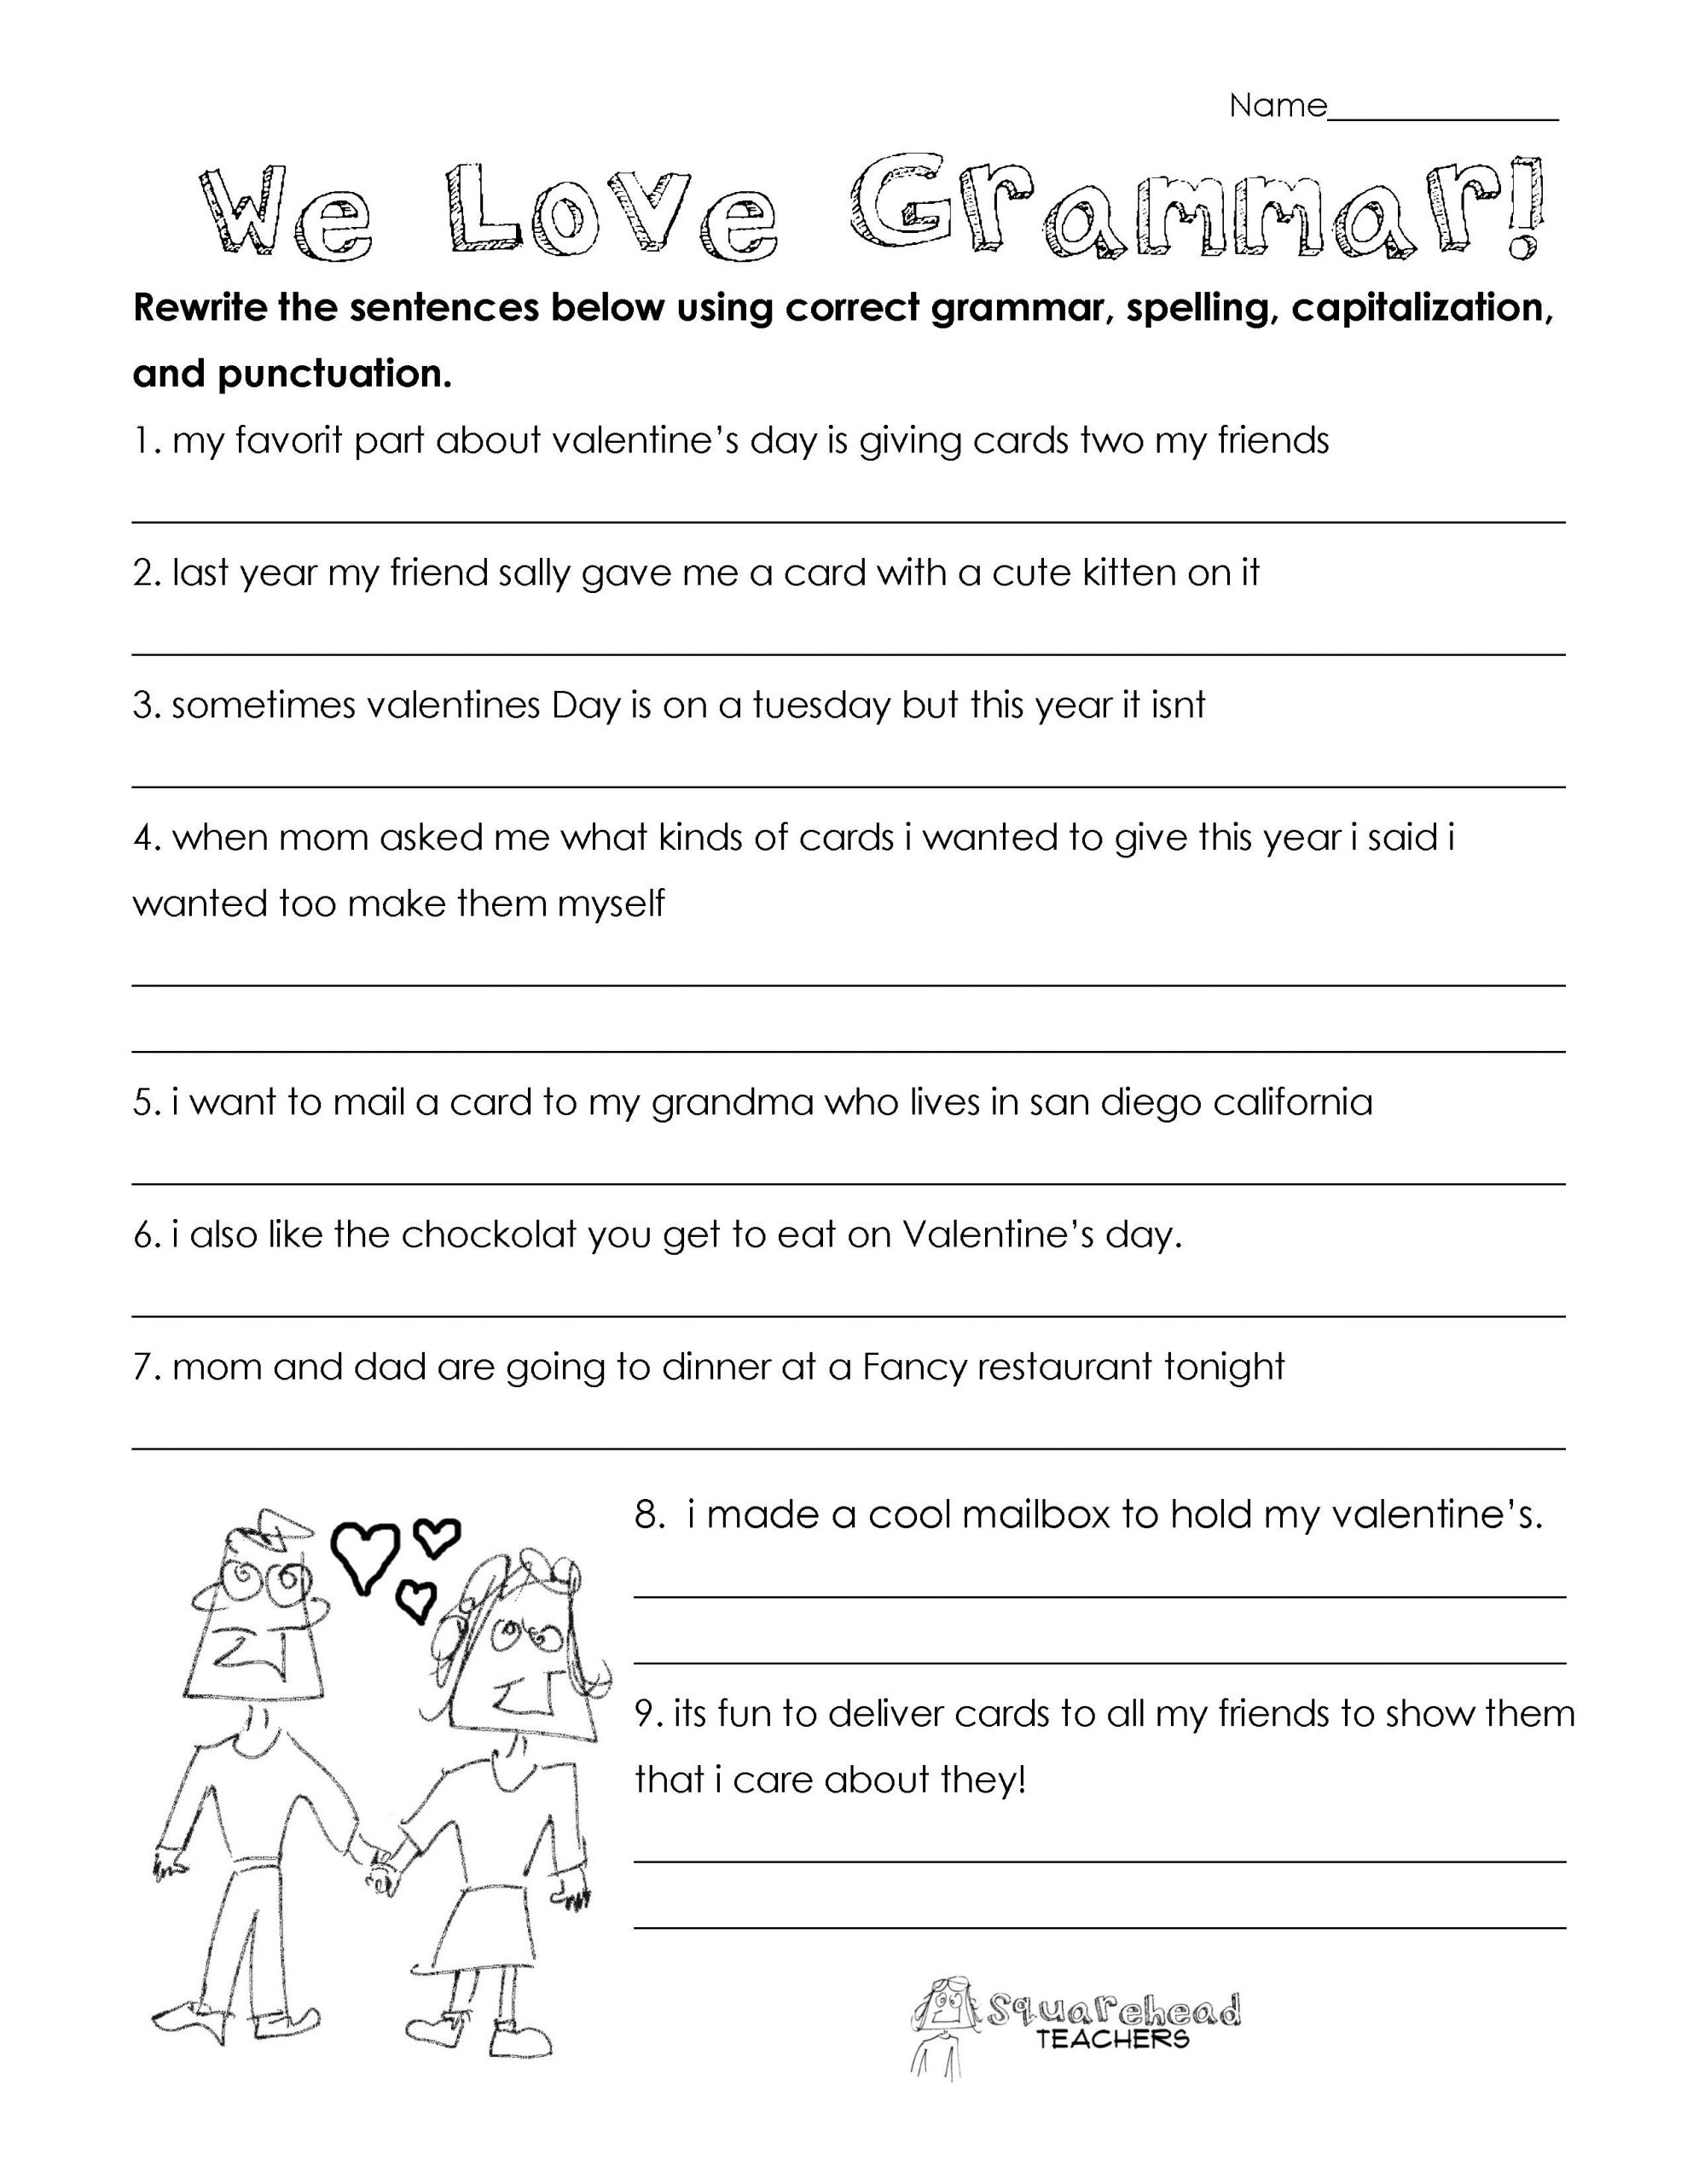 To too Two Worksheet Valentine S Day Grammar Free Worksheet for 3rd Grade and Up